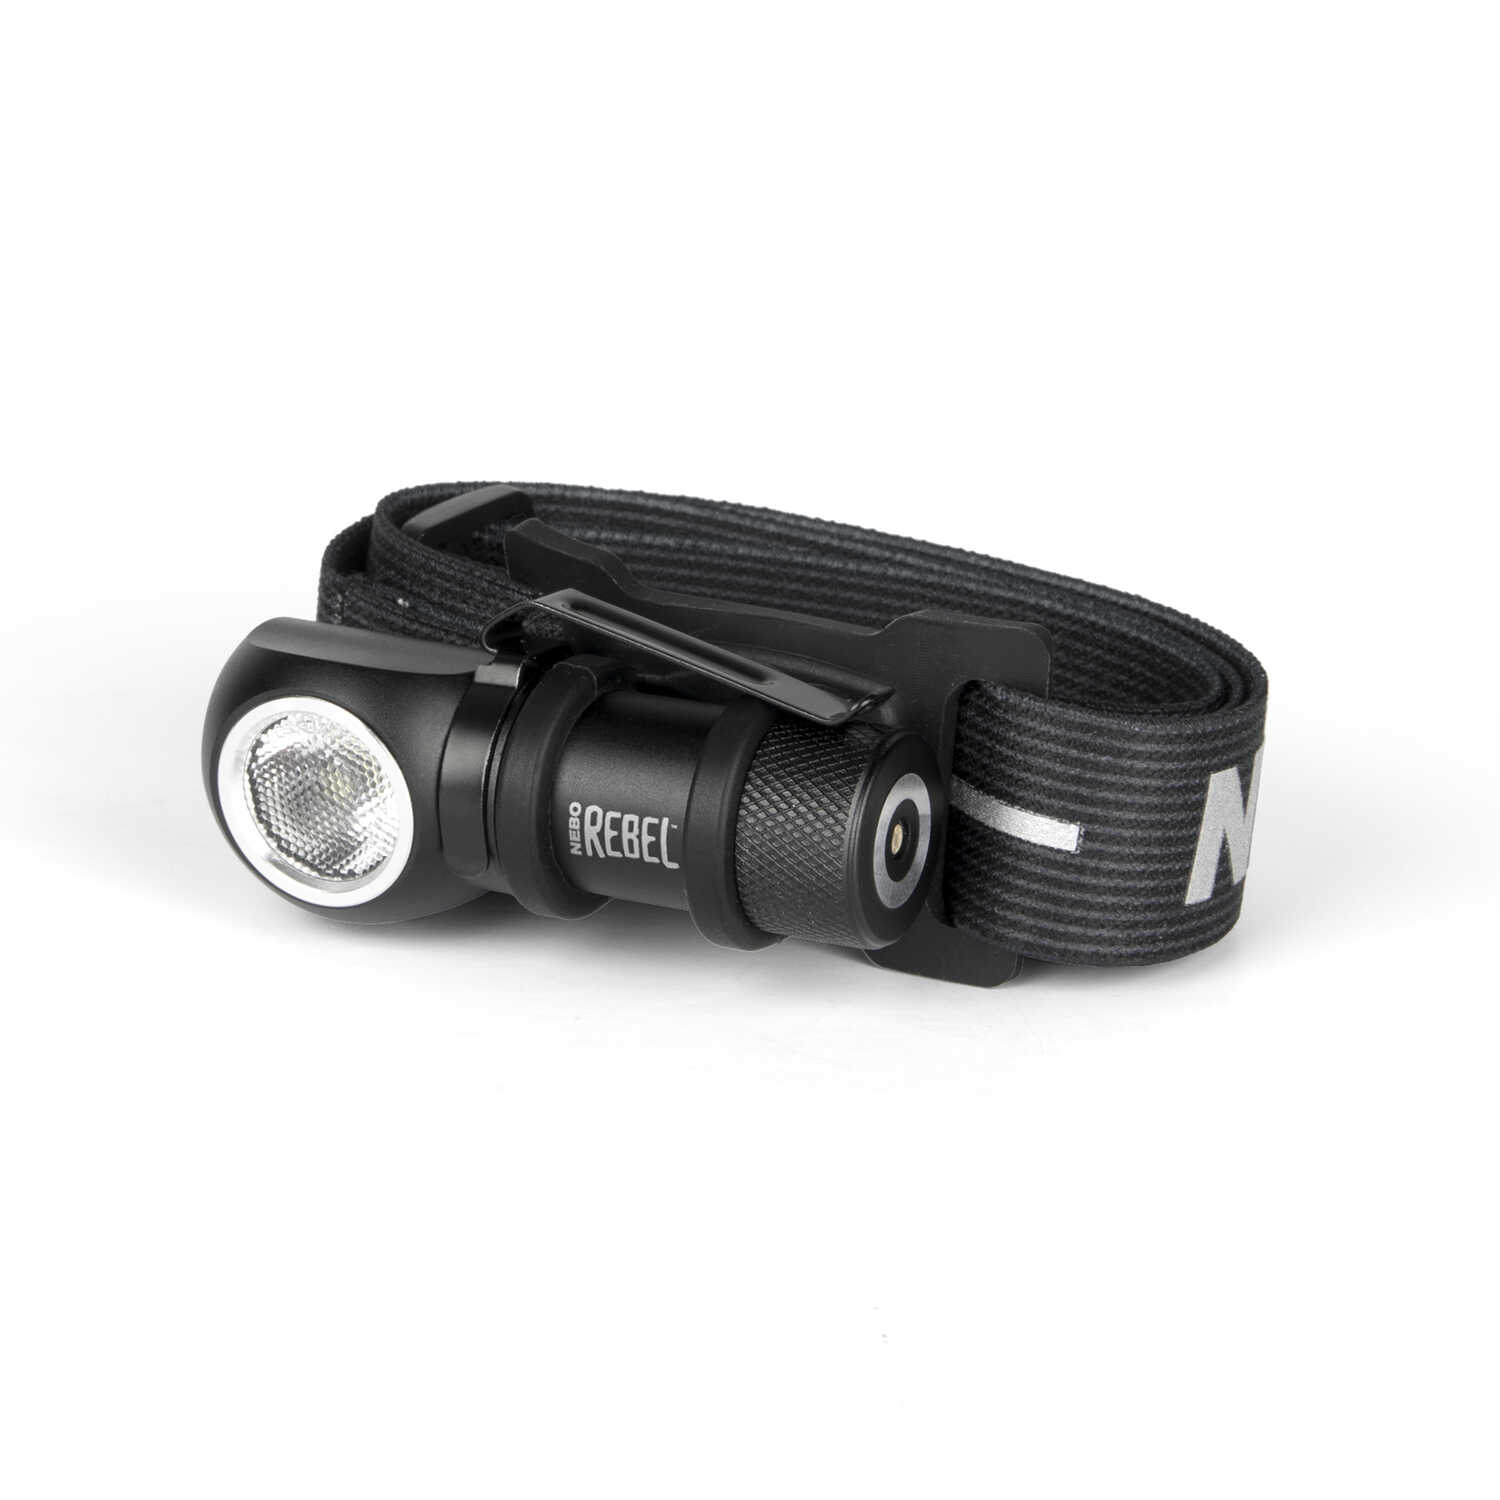 Nebo  REBEL  600 lumens Black  LED  Head Lamp  CR123A Battery